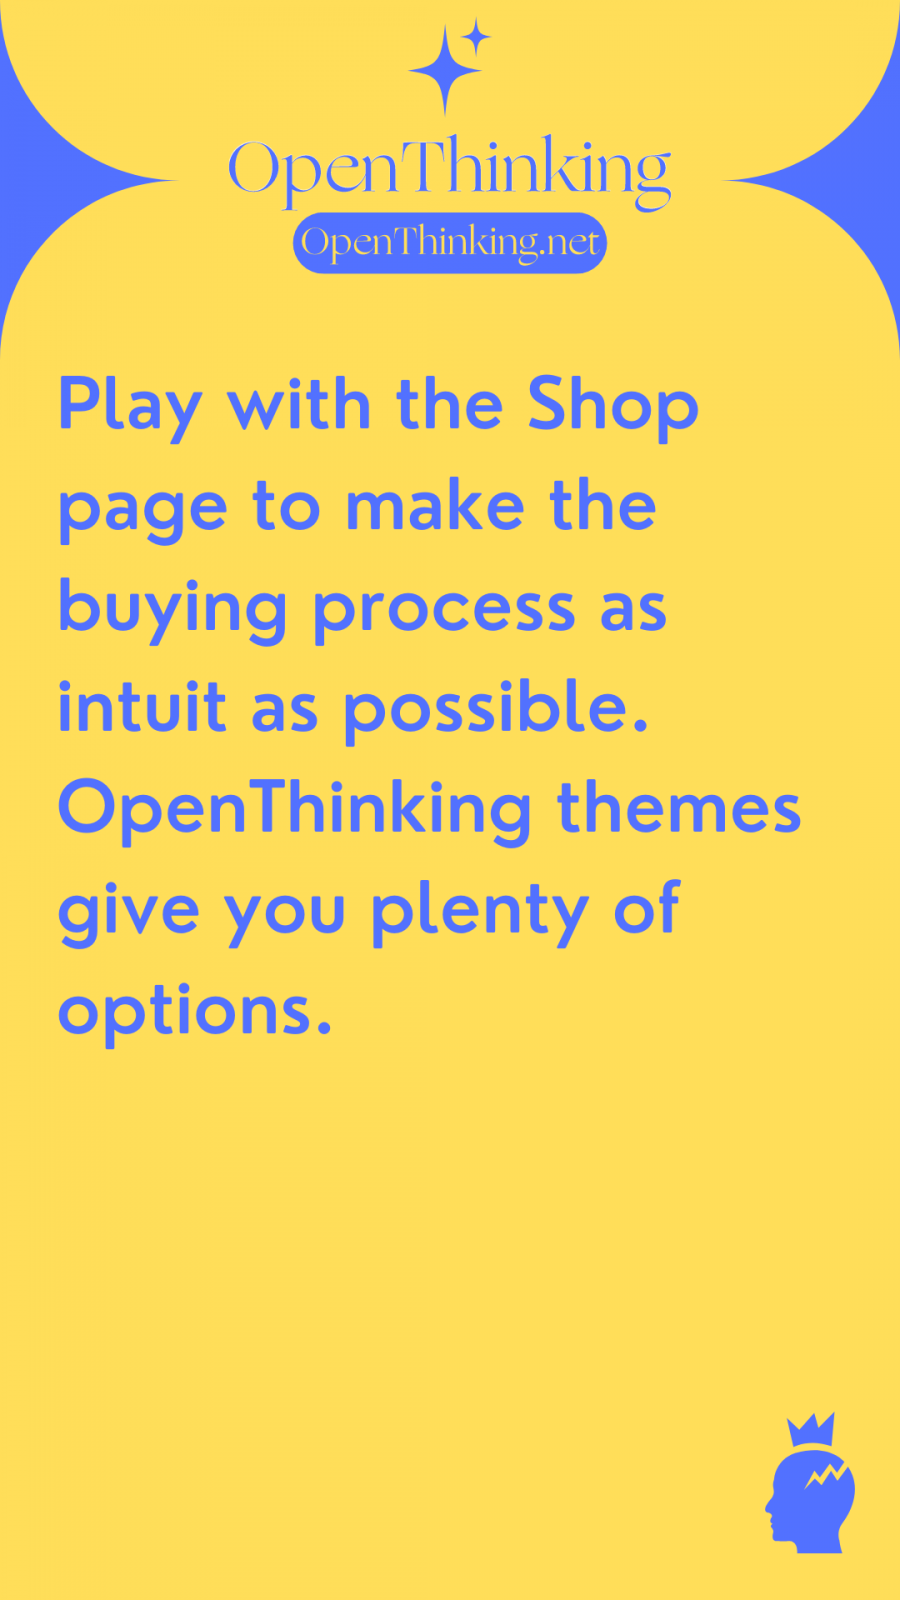 Shopify eCommerce guide shop pages